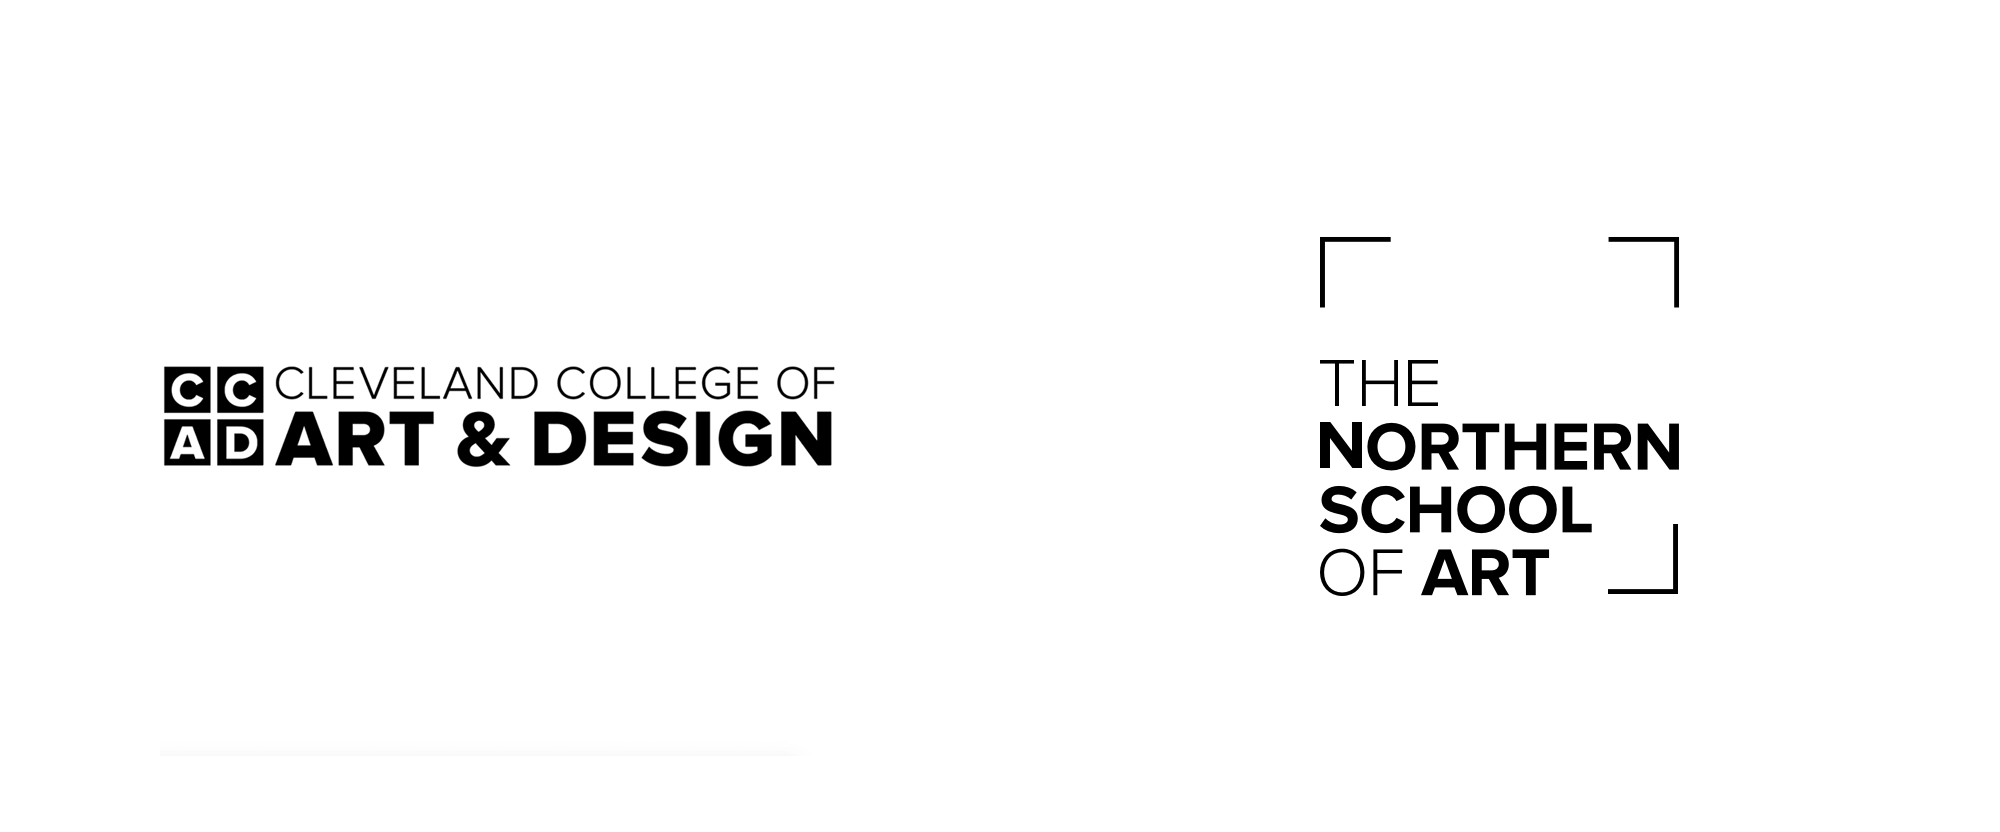 New Name and Logo for Northern School of Art